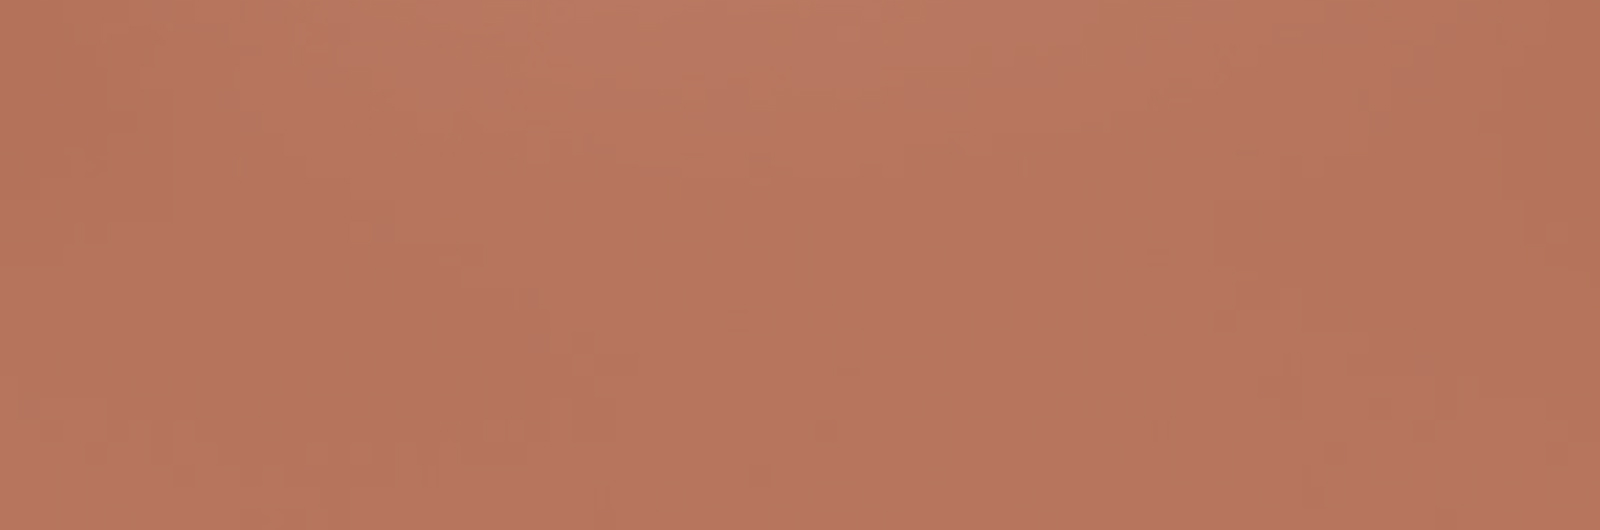 global-spirit-unicolor-terracotta-red1